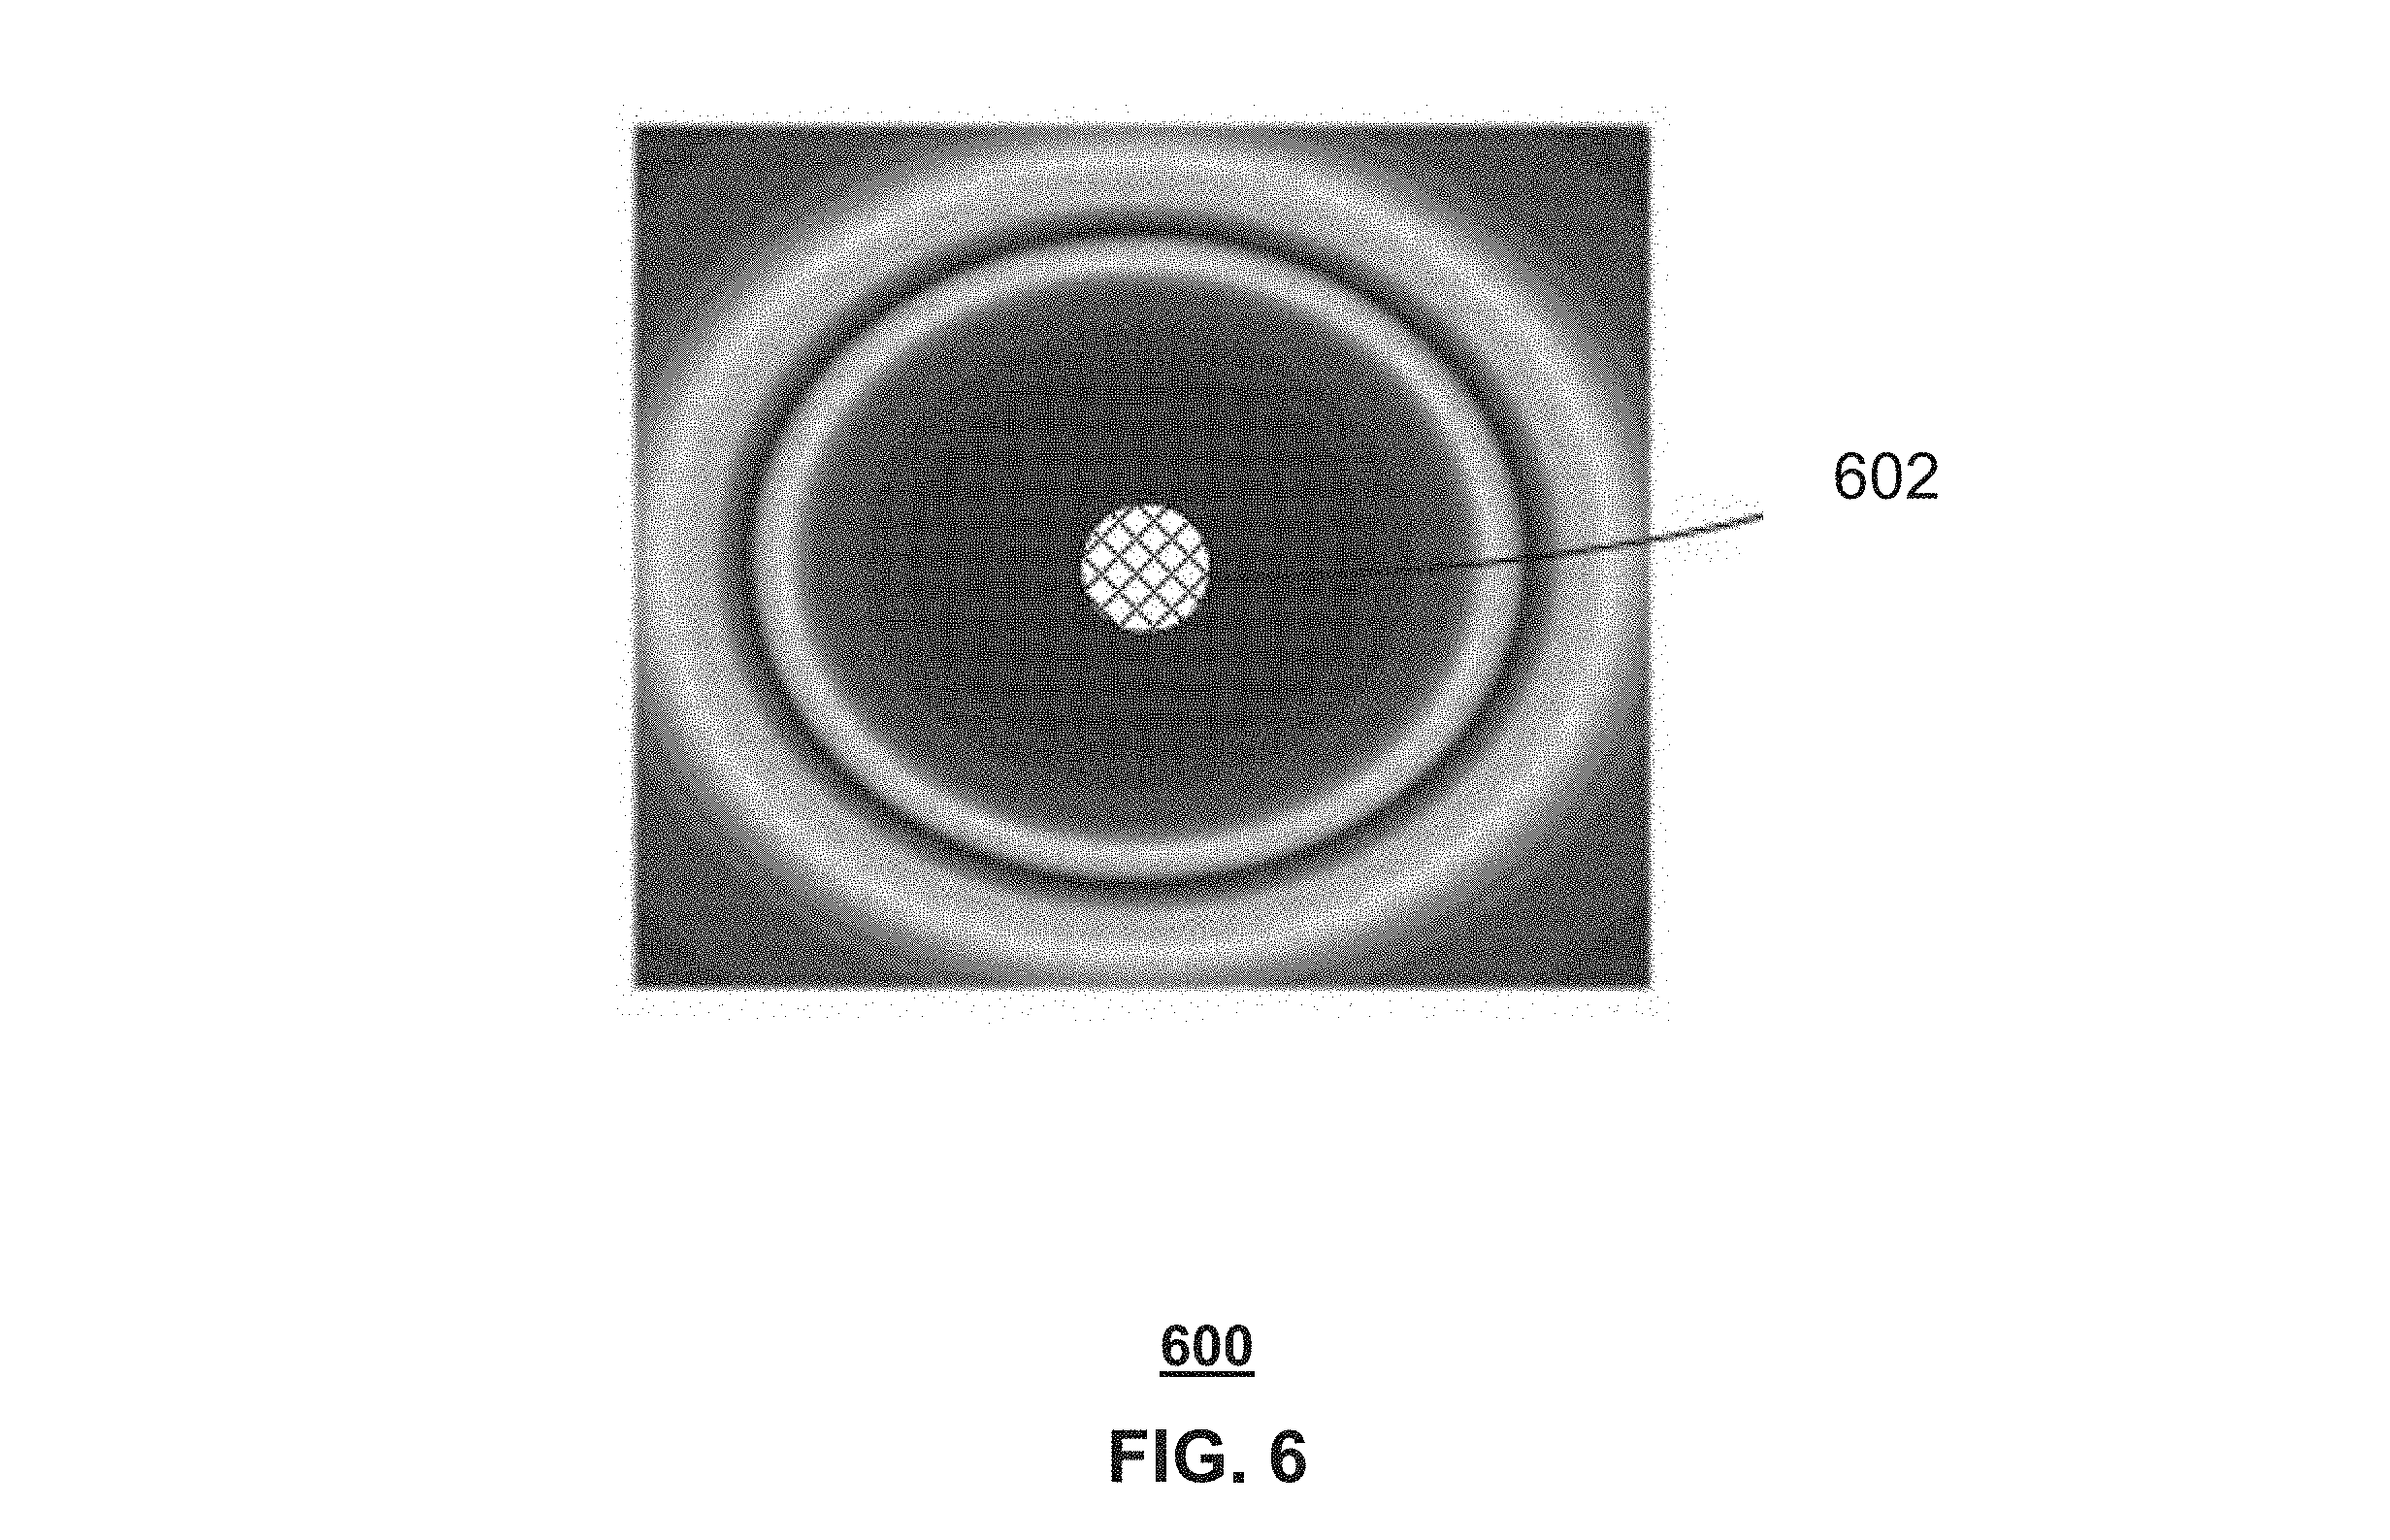 US9967173B2 - Method and apparatus for authentication and identity  management of communicating devices - Google Patents 810769688667